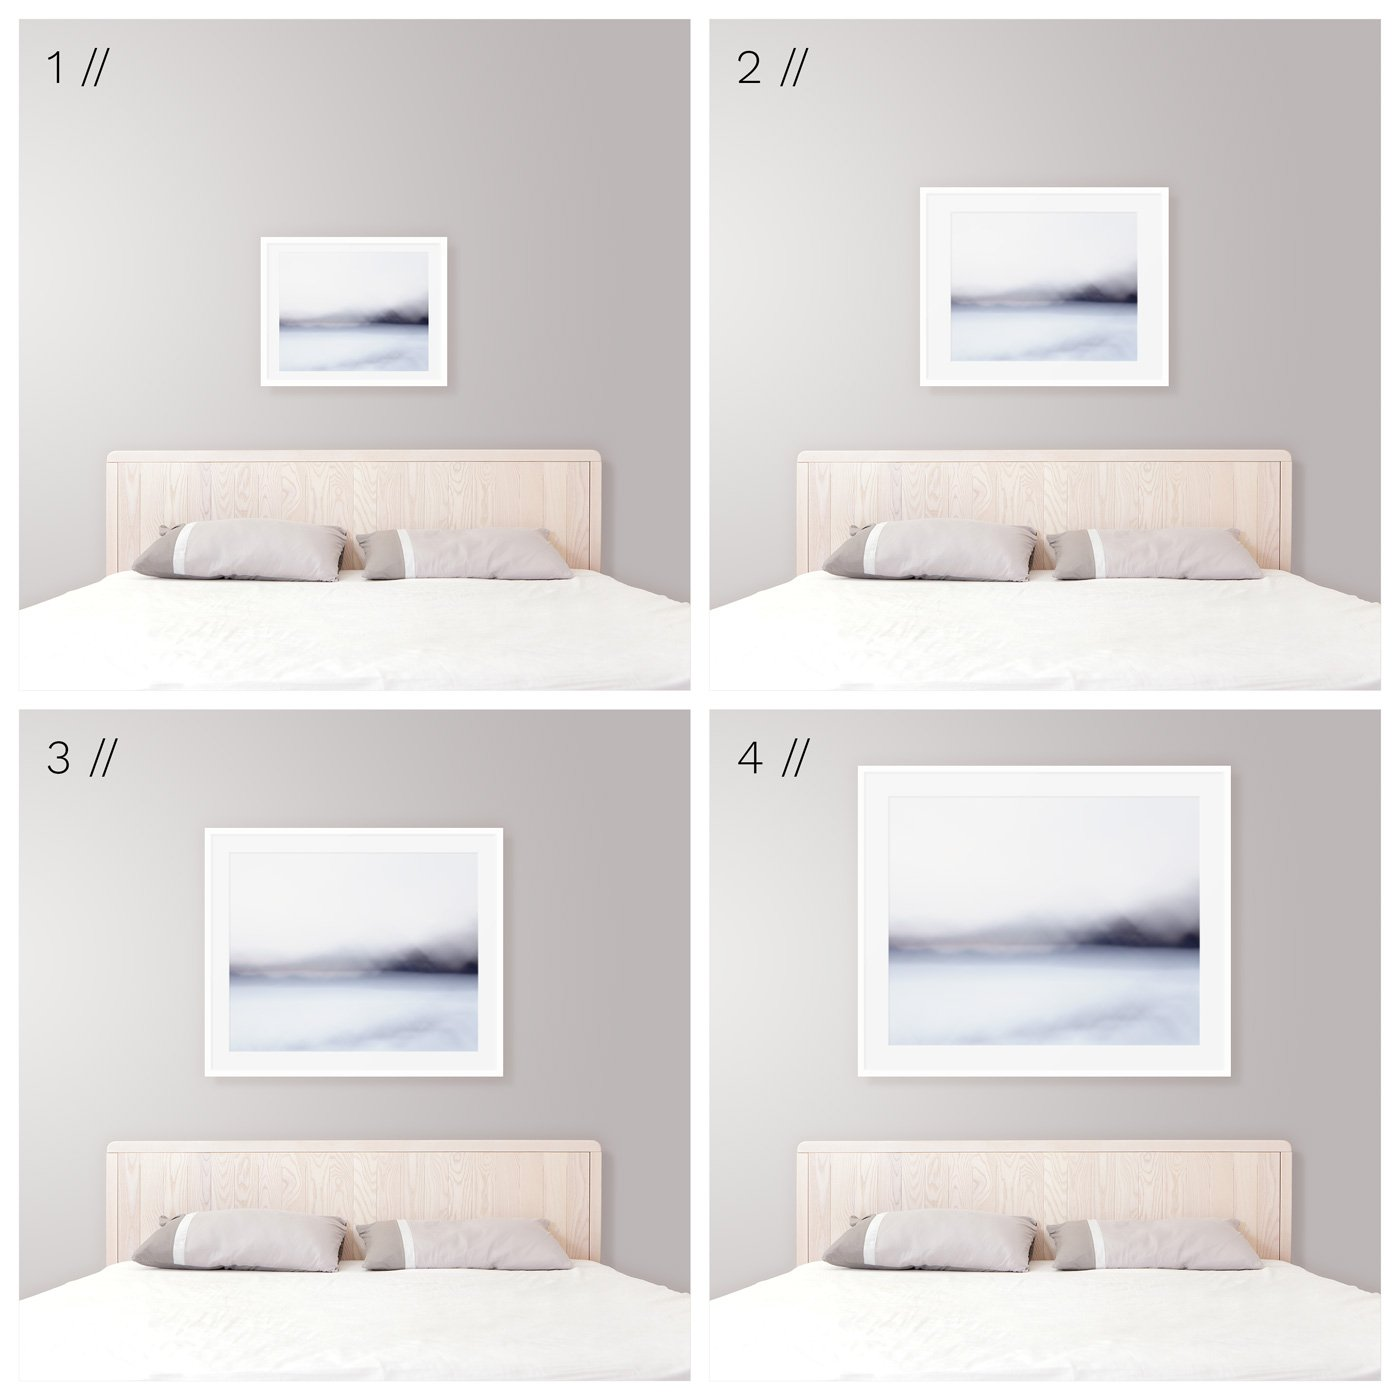 Ideal Art Size Above King Bed Modern Coastal Bedroom Decor Tips